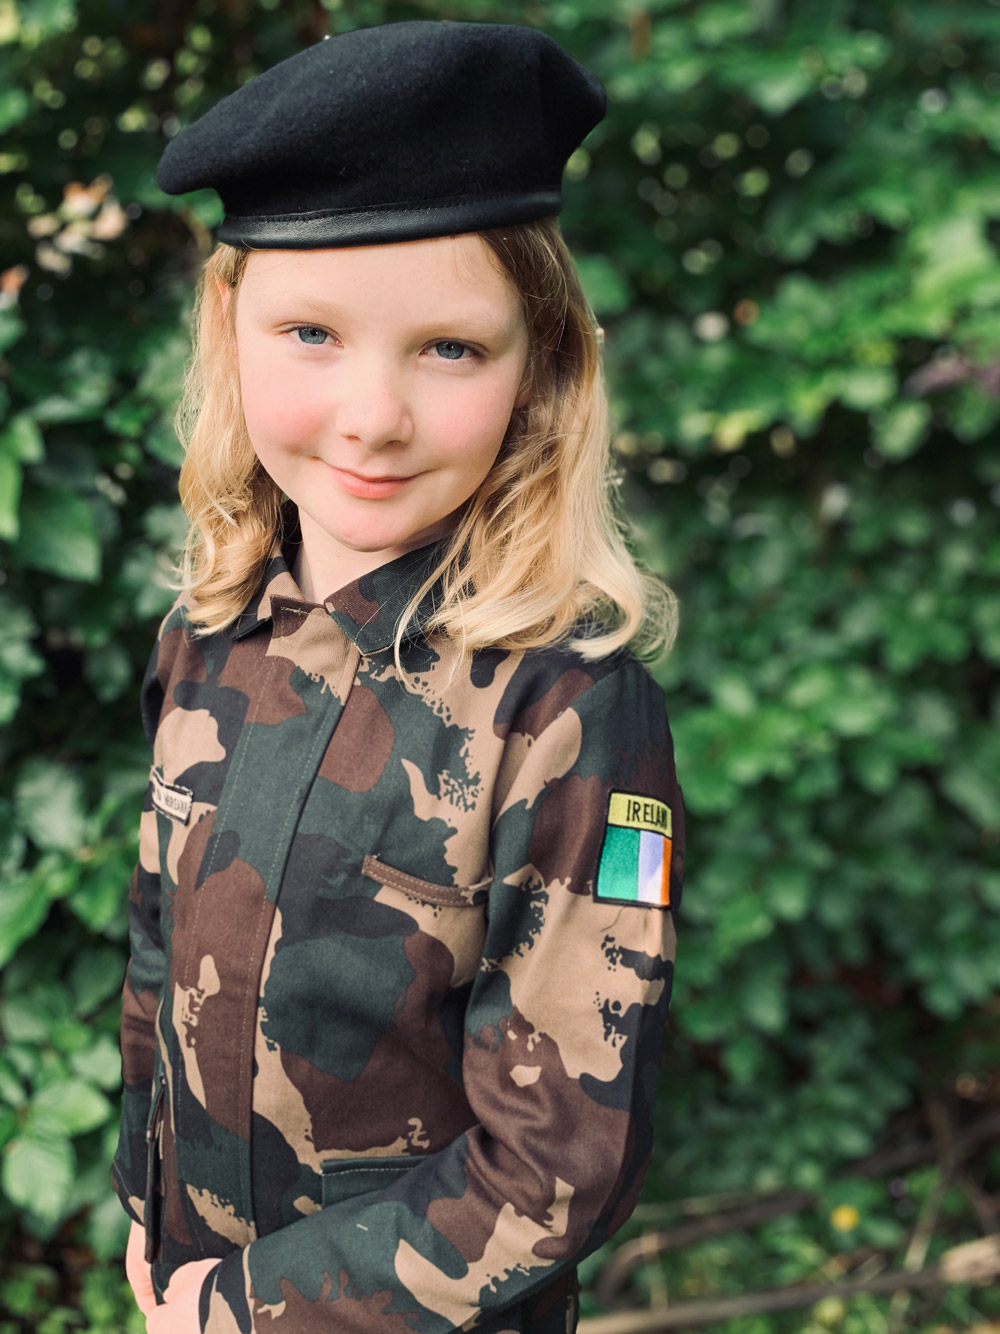 Camouflage Irish Army uniform being worn by a young girl